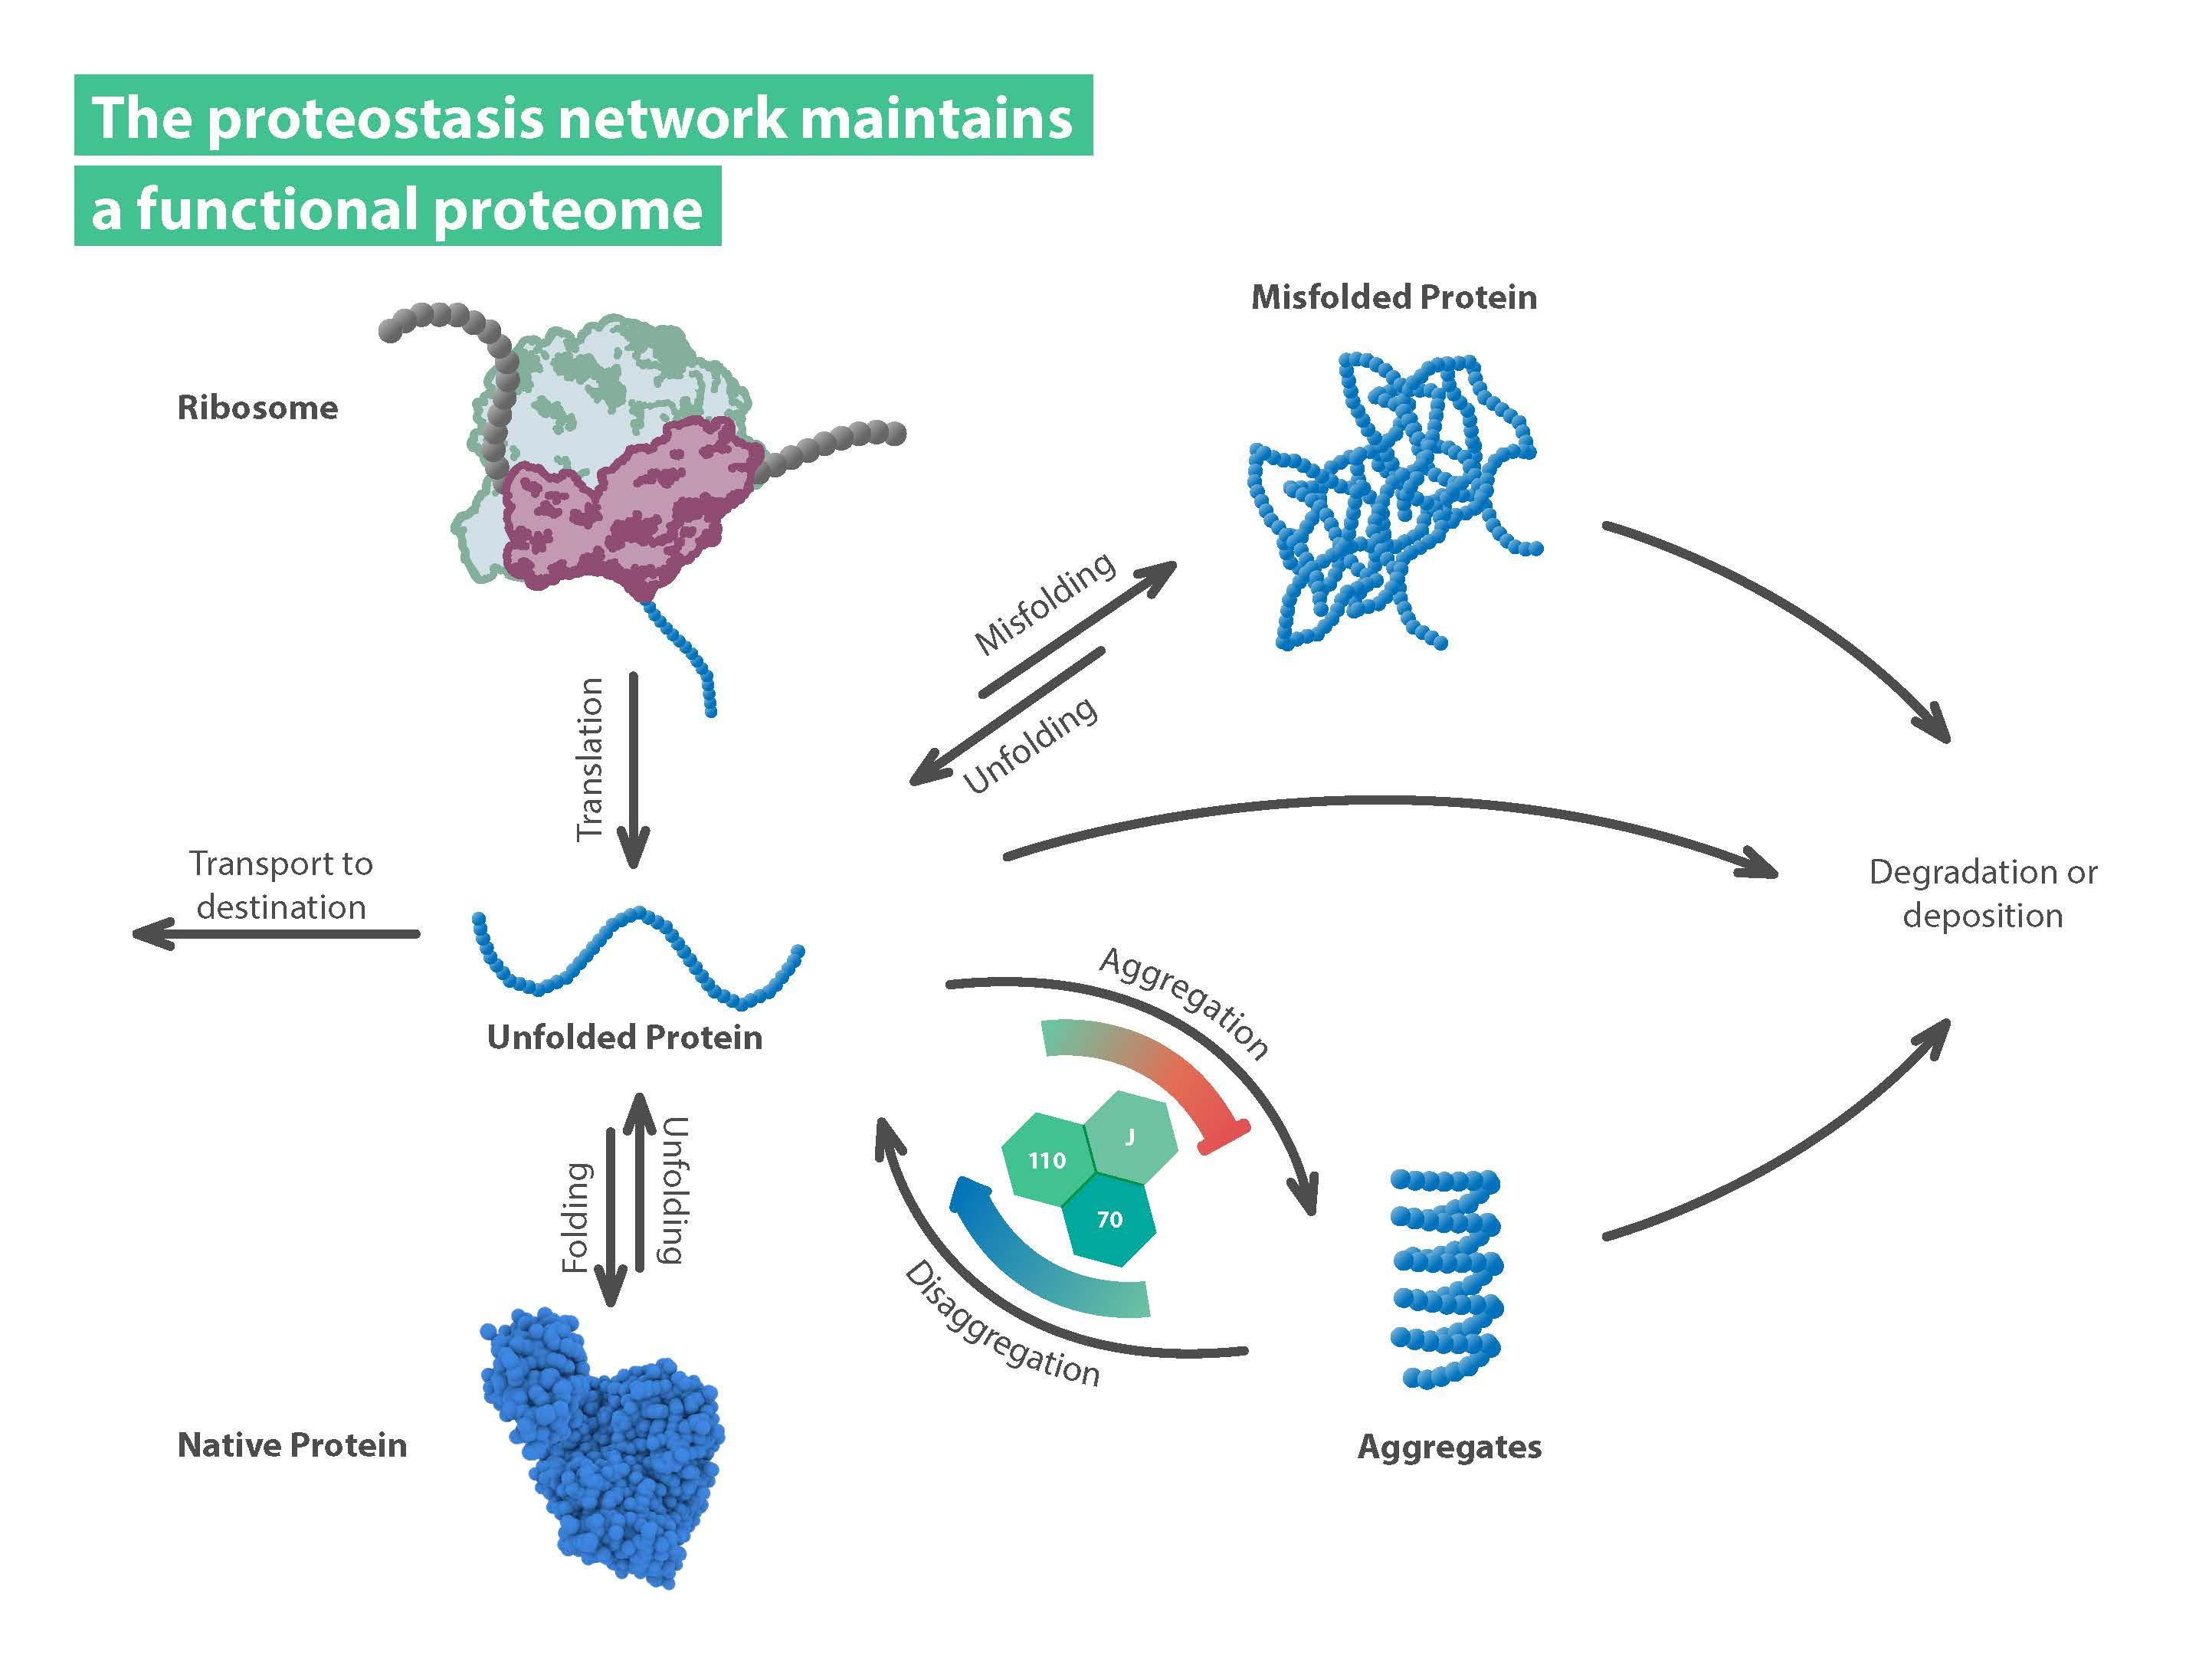 Figure showing a functional proteome in the proteostasis network.